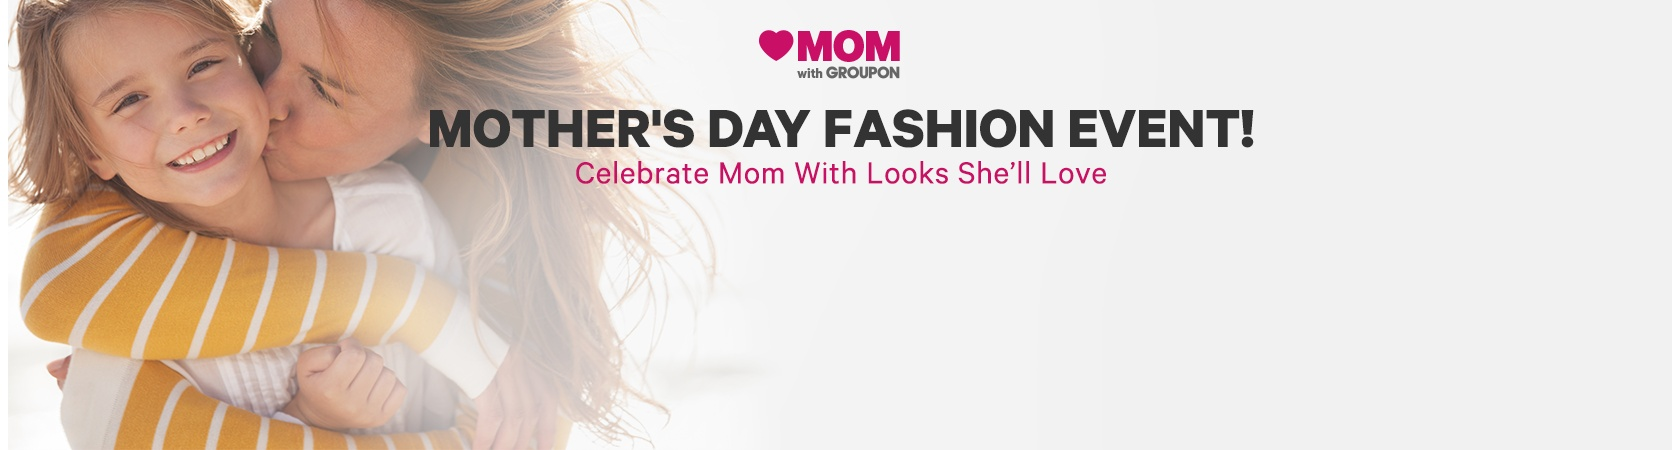 Mother's Day Fashion Event